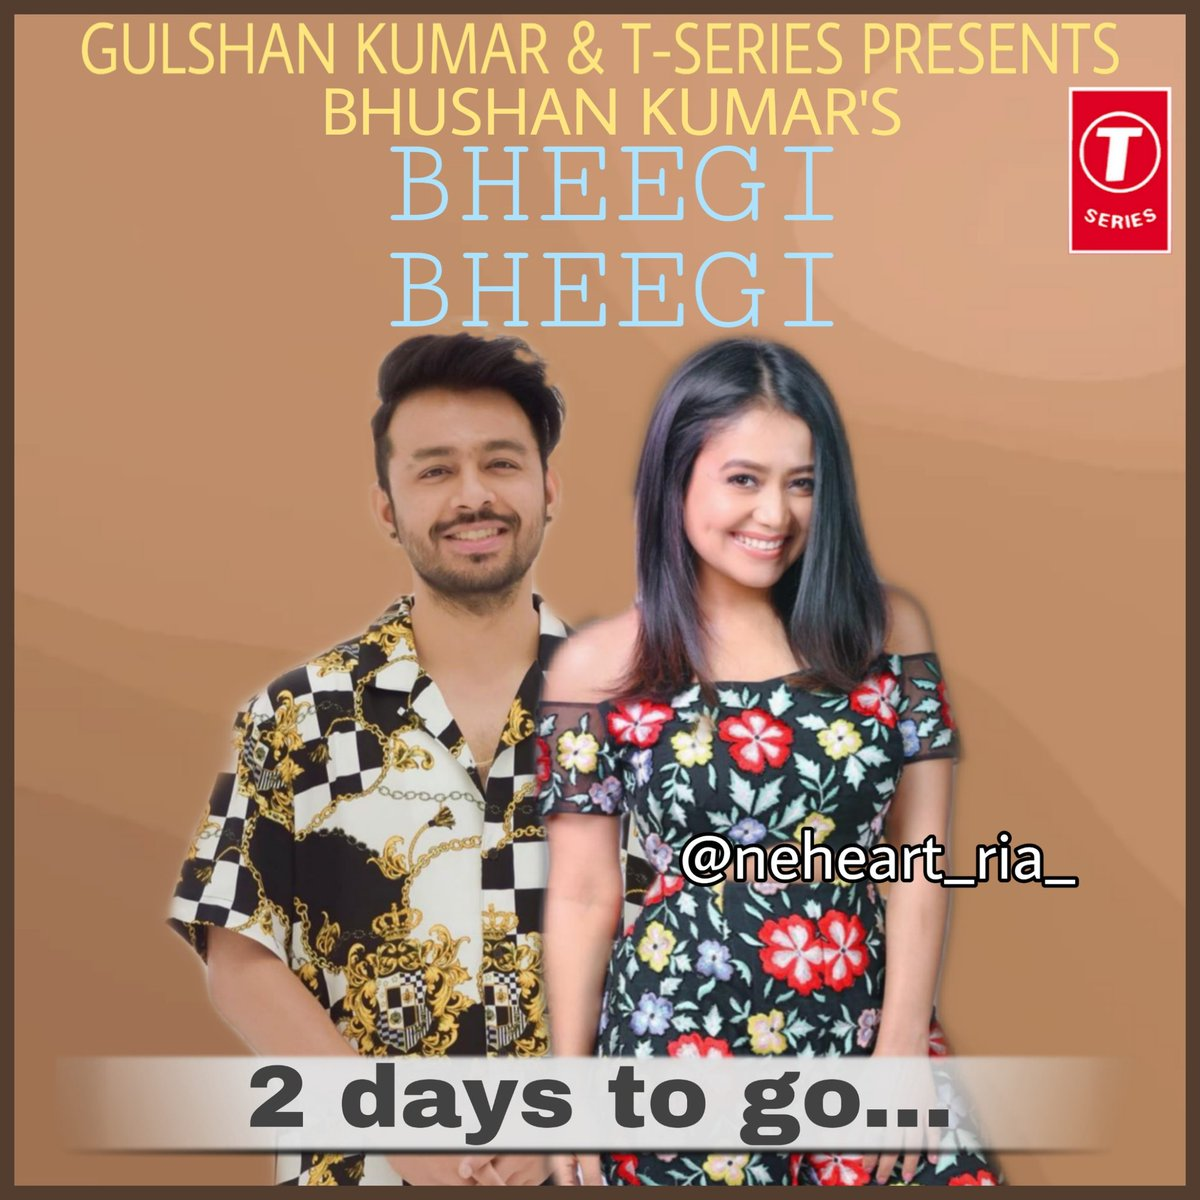 After #ohhumsafar This brother-sister duo is back with #BheegiBheegi .Just can't wait for this song.Song will be out on 11th May on @TSeries YouTube channel. @iAmNehaKakkar @TonyKakkar  #NehaKakkar #TonyKakkar #neheart_ria_ #keepsupporting #keeploving #kbye #neheartspic.twitter.com/KtP37Rxy00